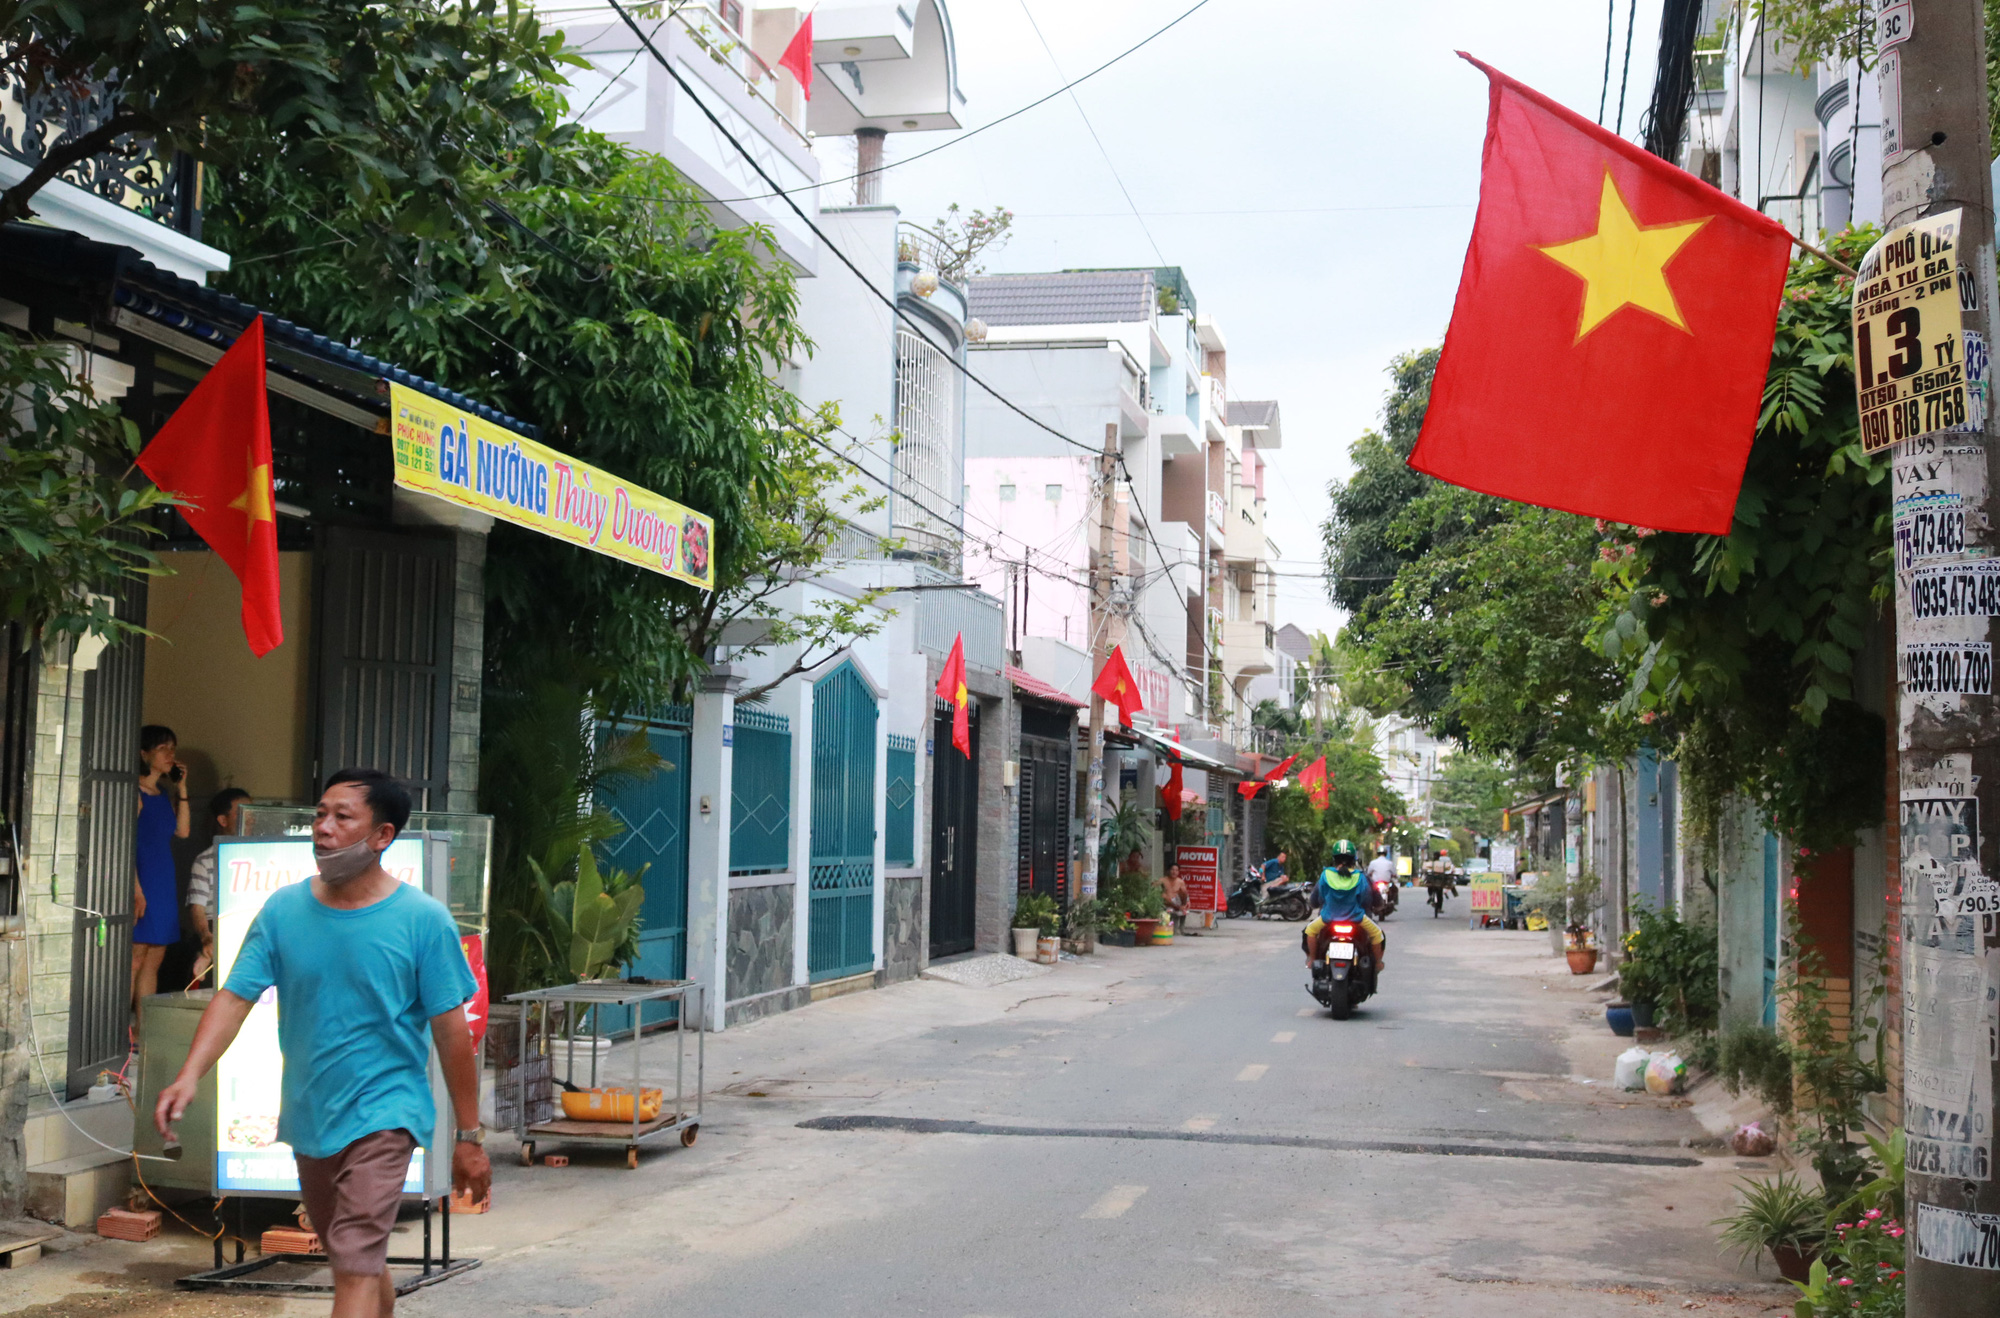 Residents hang national flags in front of their homes along a street in Go Vap District, Ho Chi Minh City to celebrate Vietnam's National Day on April 30, 2020. Photo: Nhat Thinh / Tuoi Tre